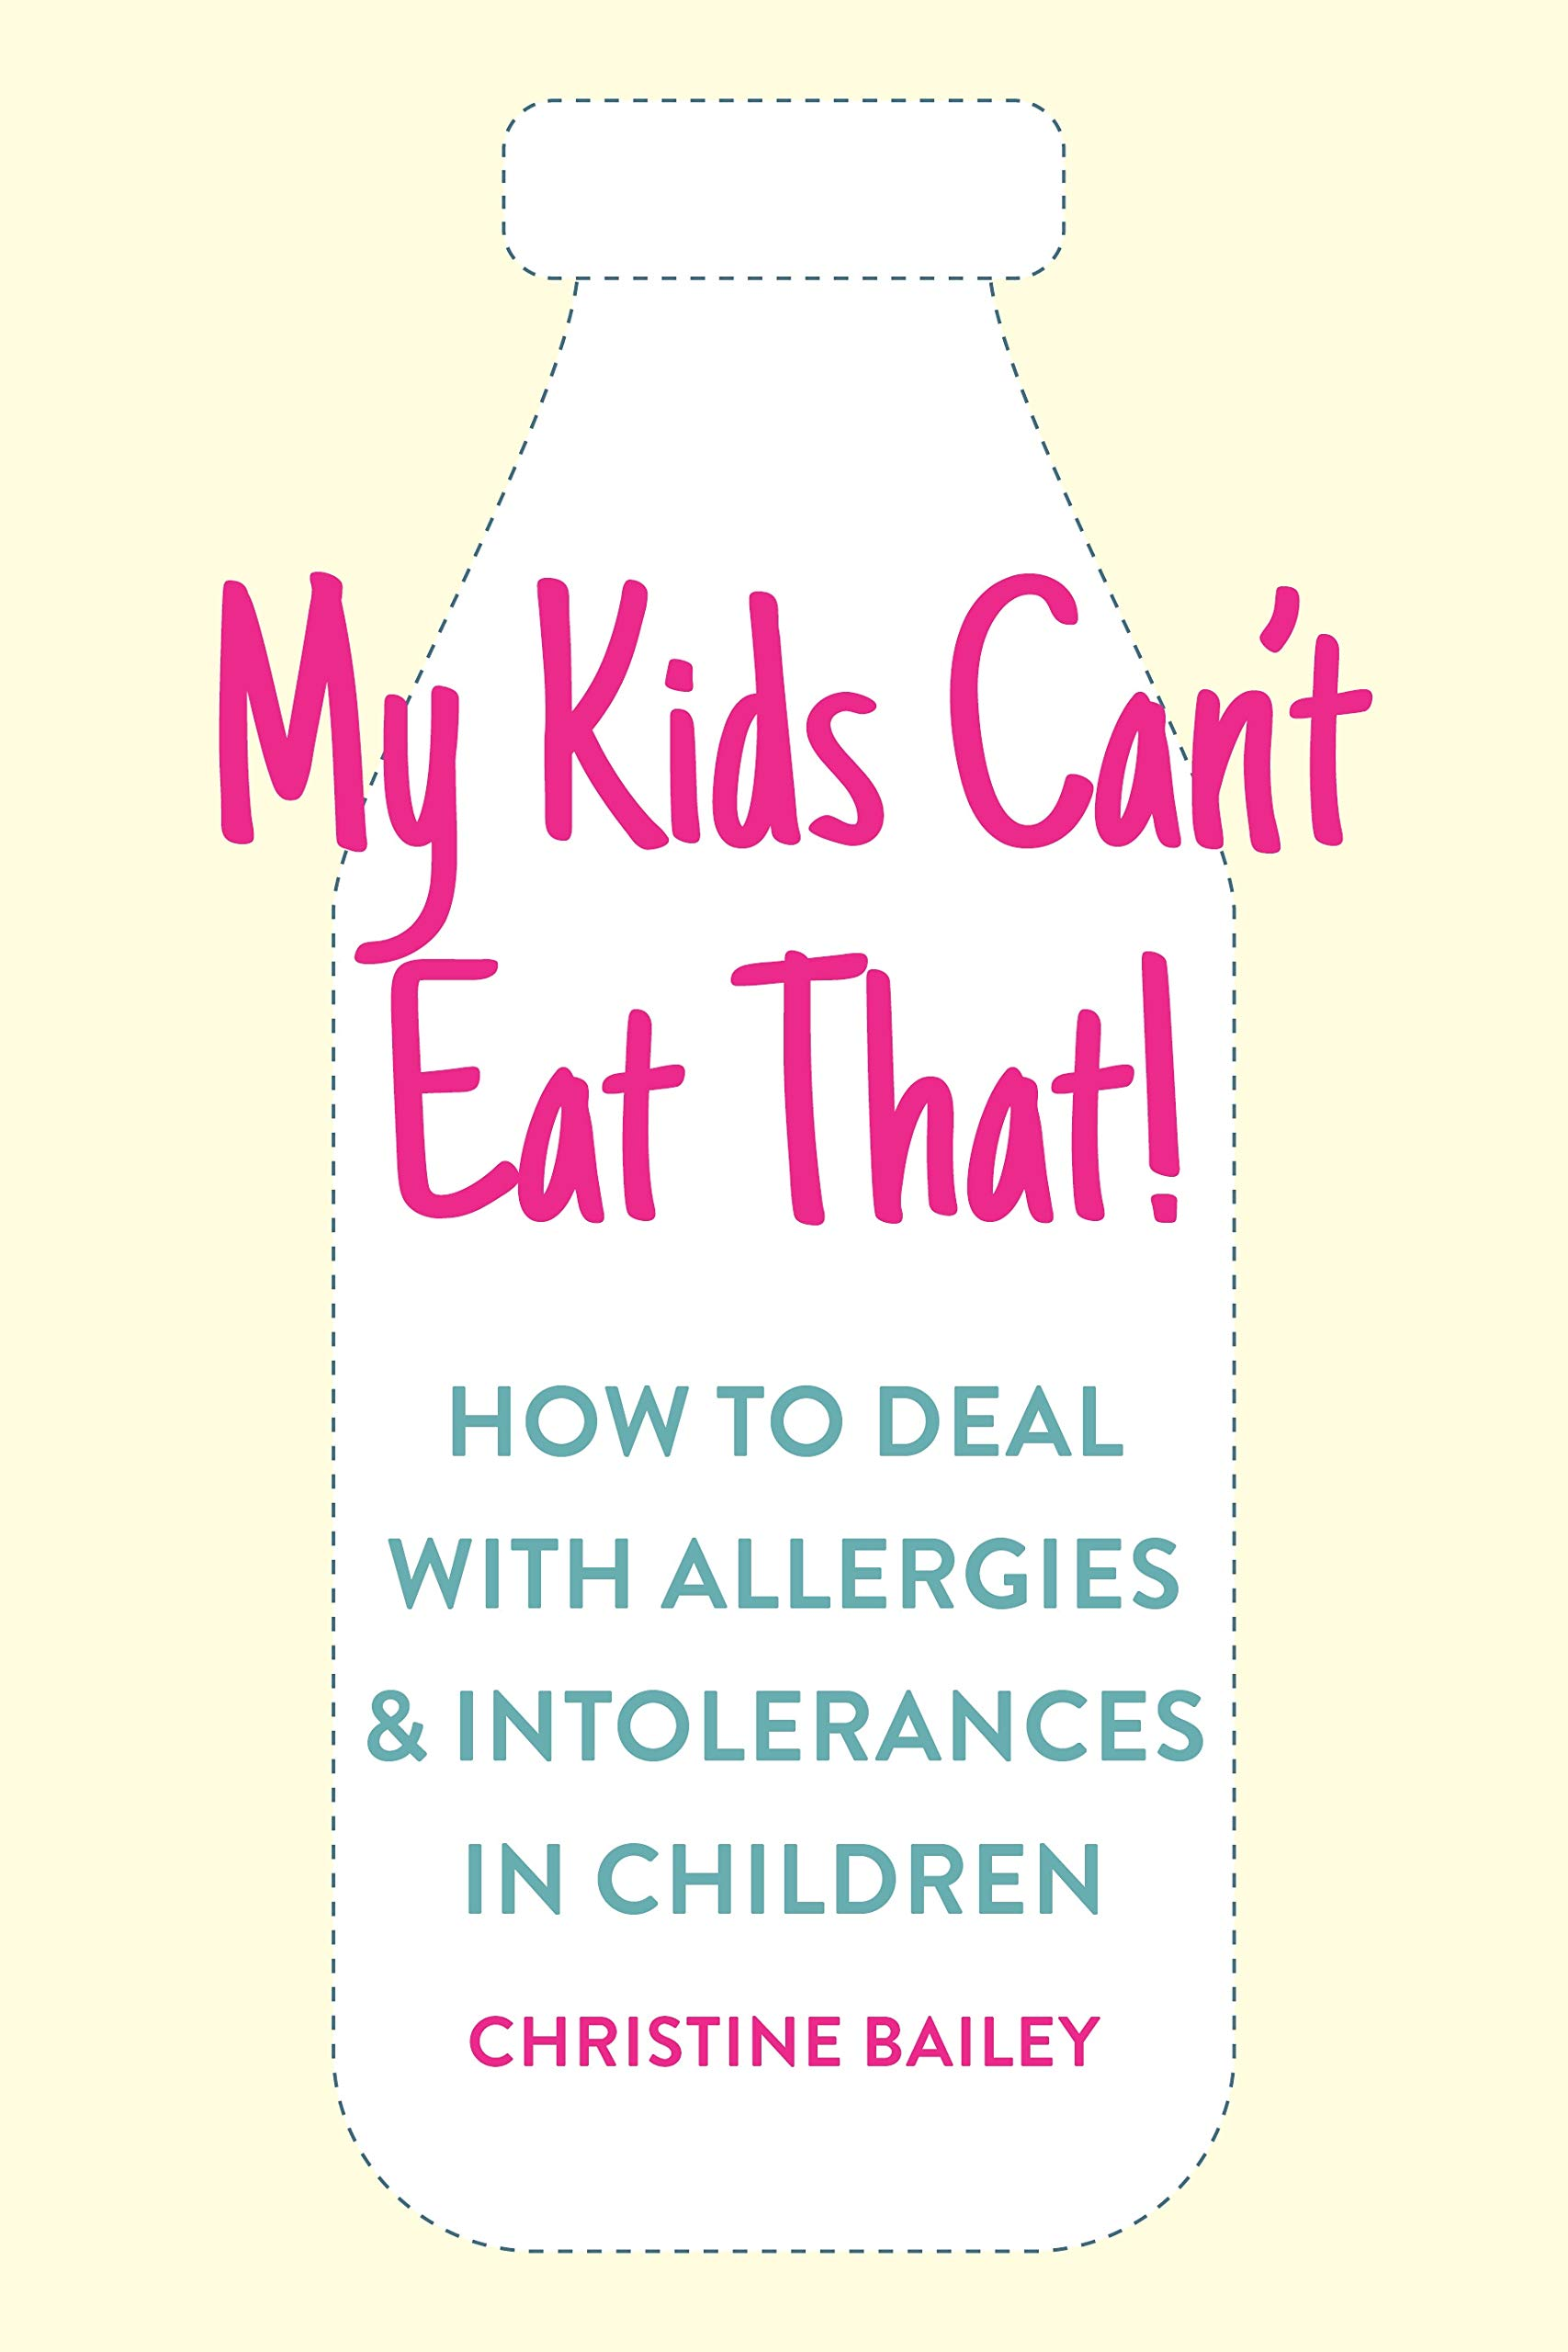 My Kids Can't Eat That  Easy Rules And Recipes To Cope With Children's Food Allergies Intolerances And Sensitivities